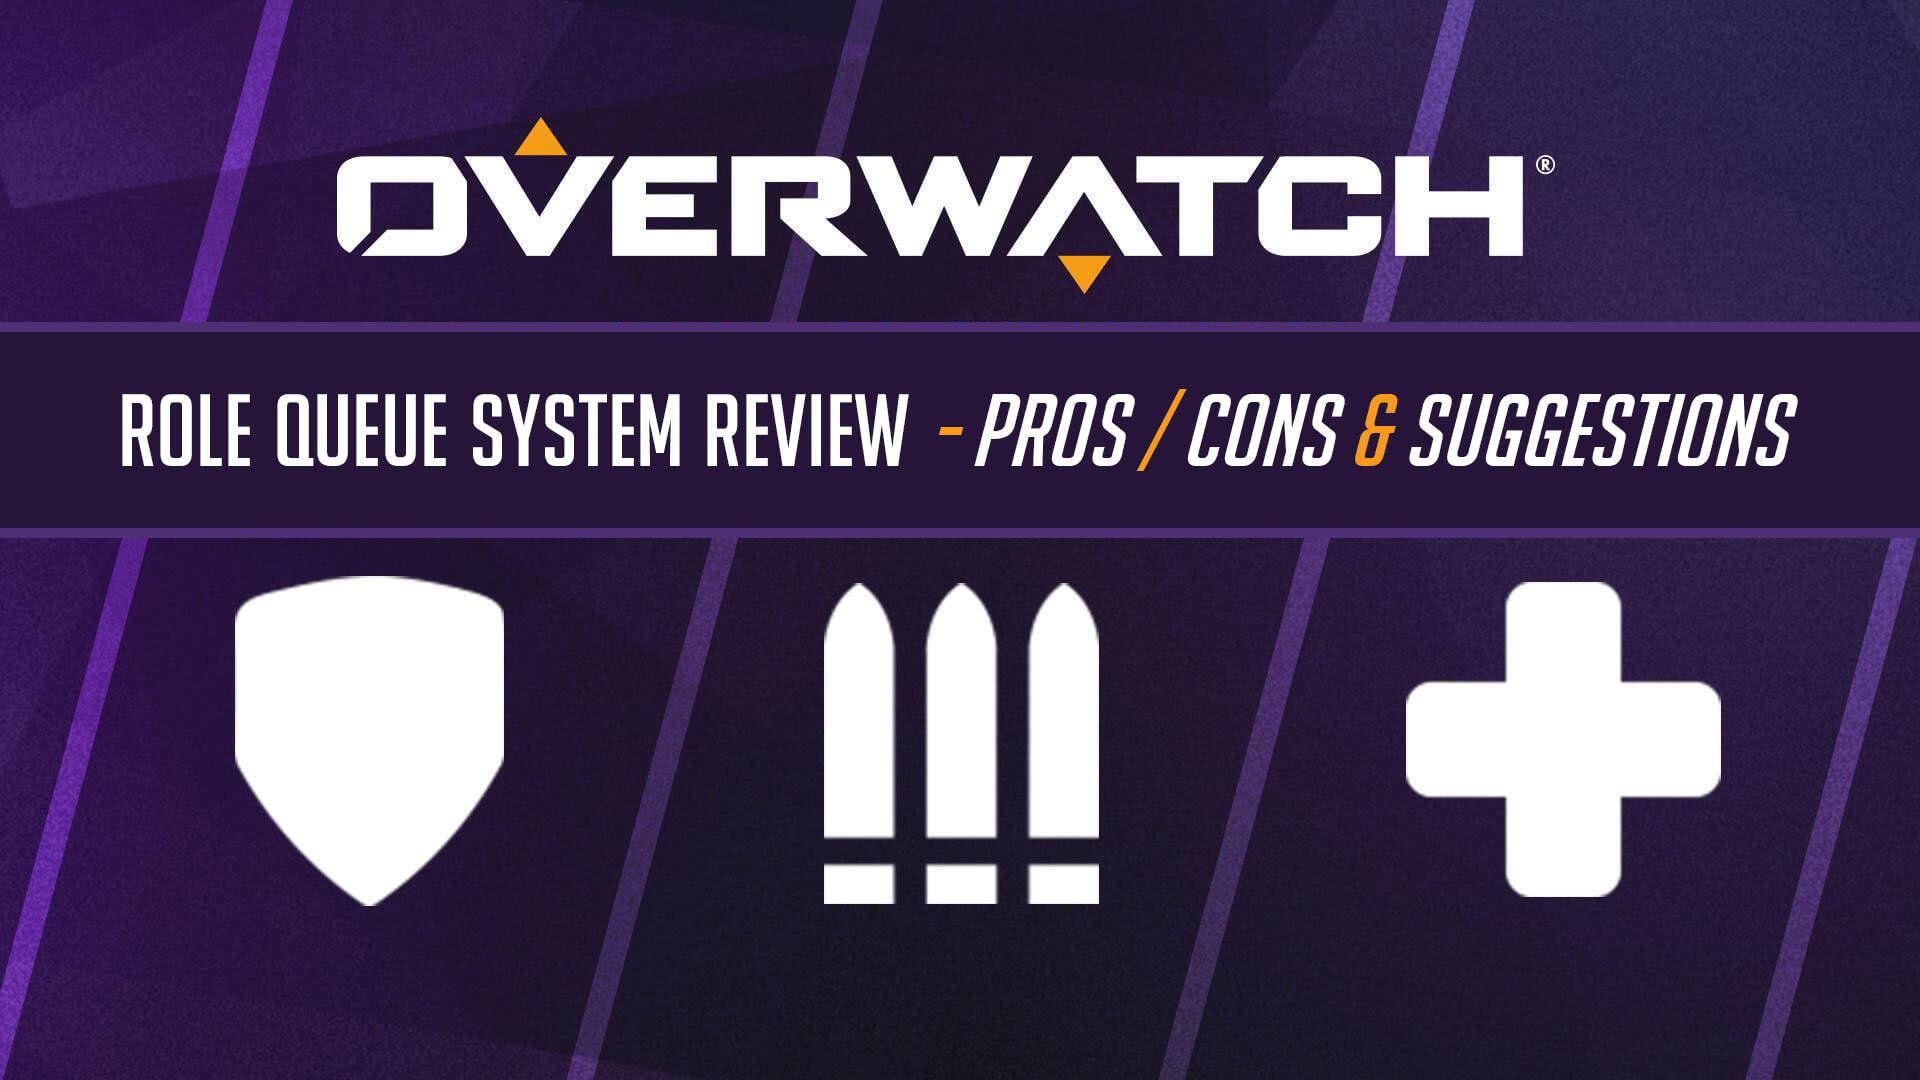 Overwatch Role Queue System Review - Pros, Cons and Suggestions Thumbnail